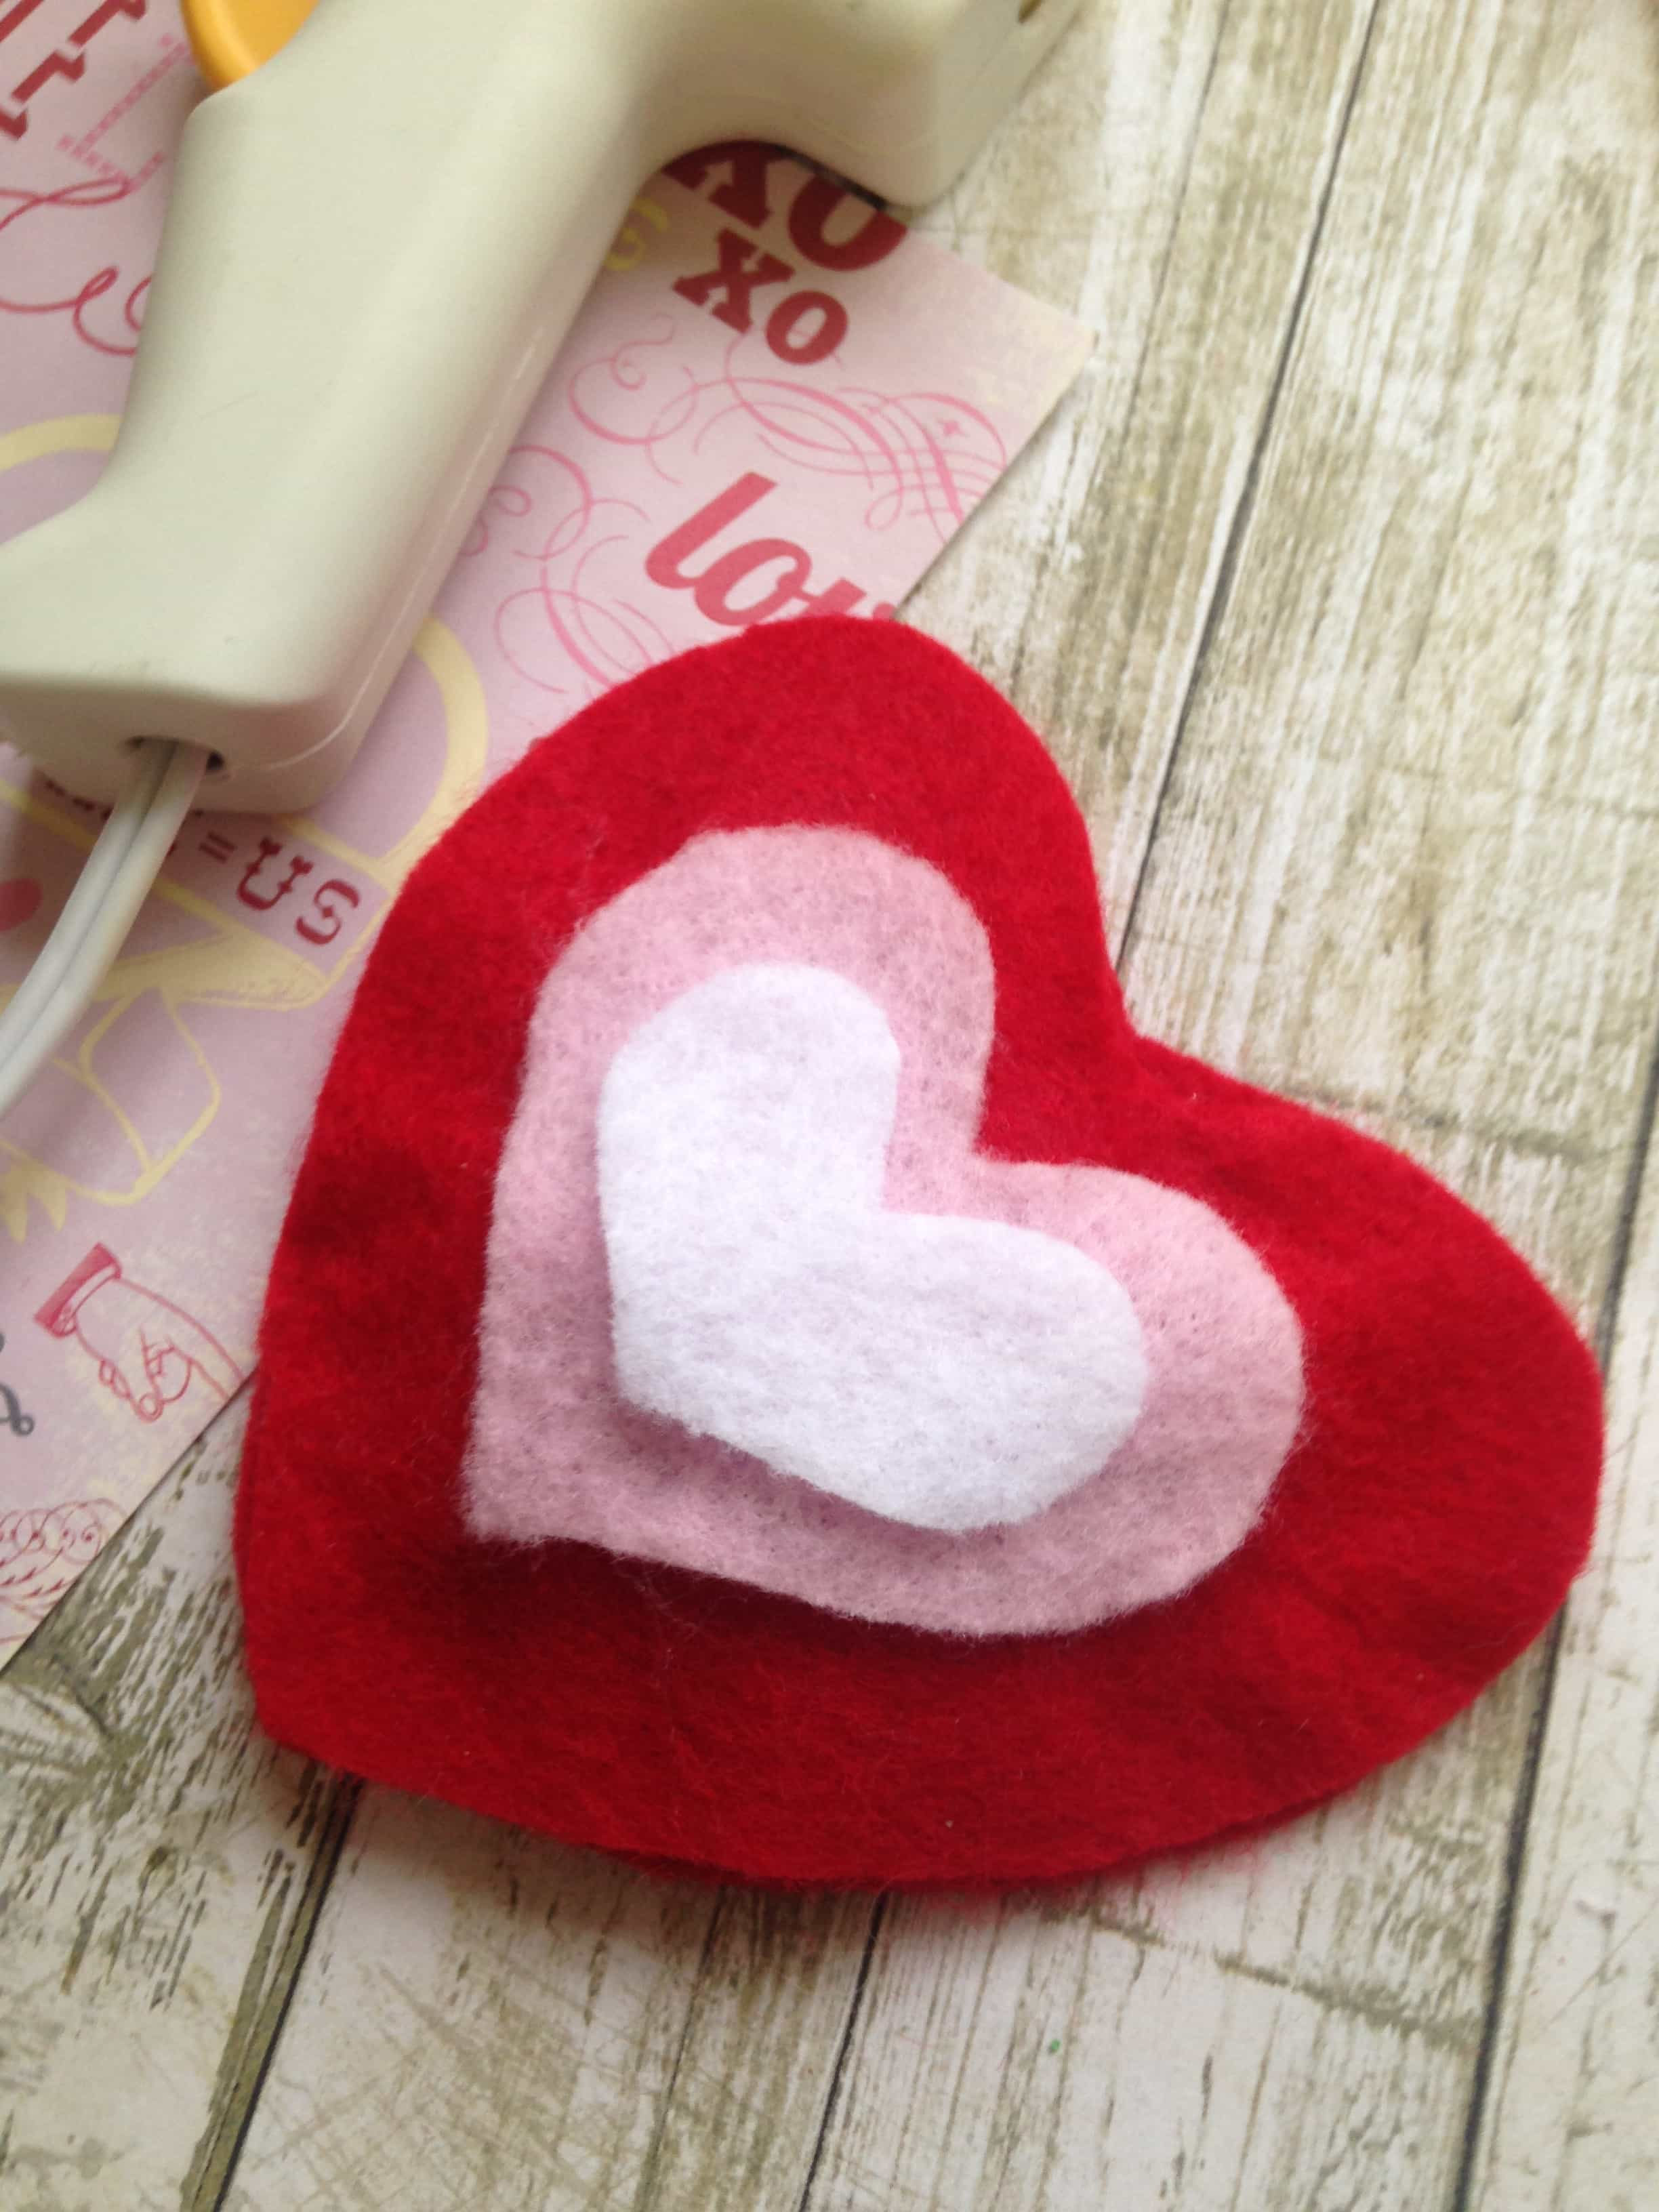 Use a glue gun to seal the heart and attach additional felt hearts on top of the felt heart sachet